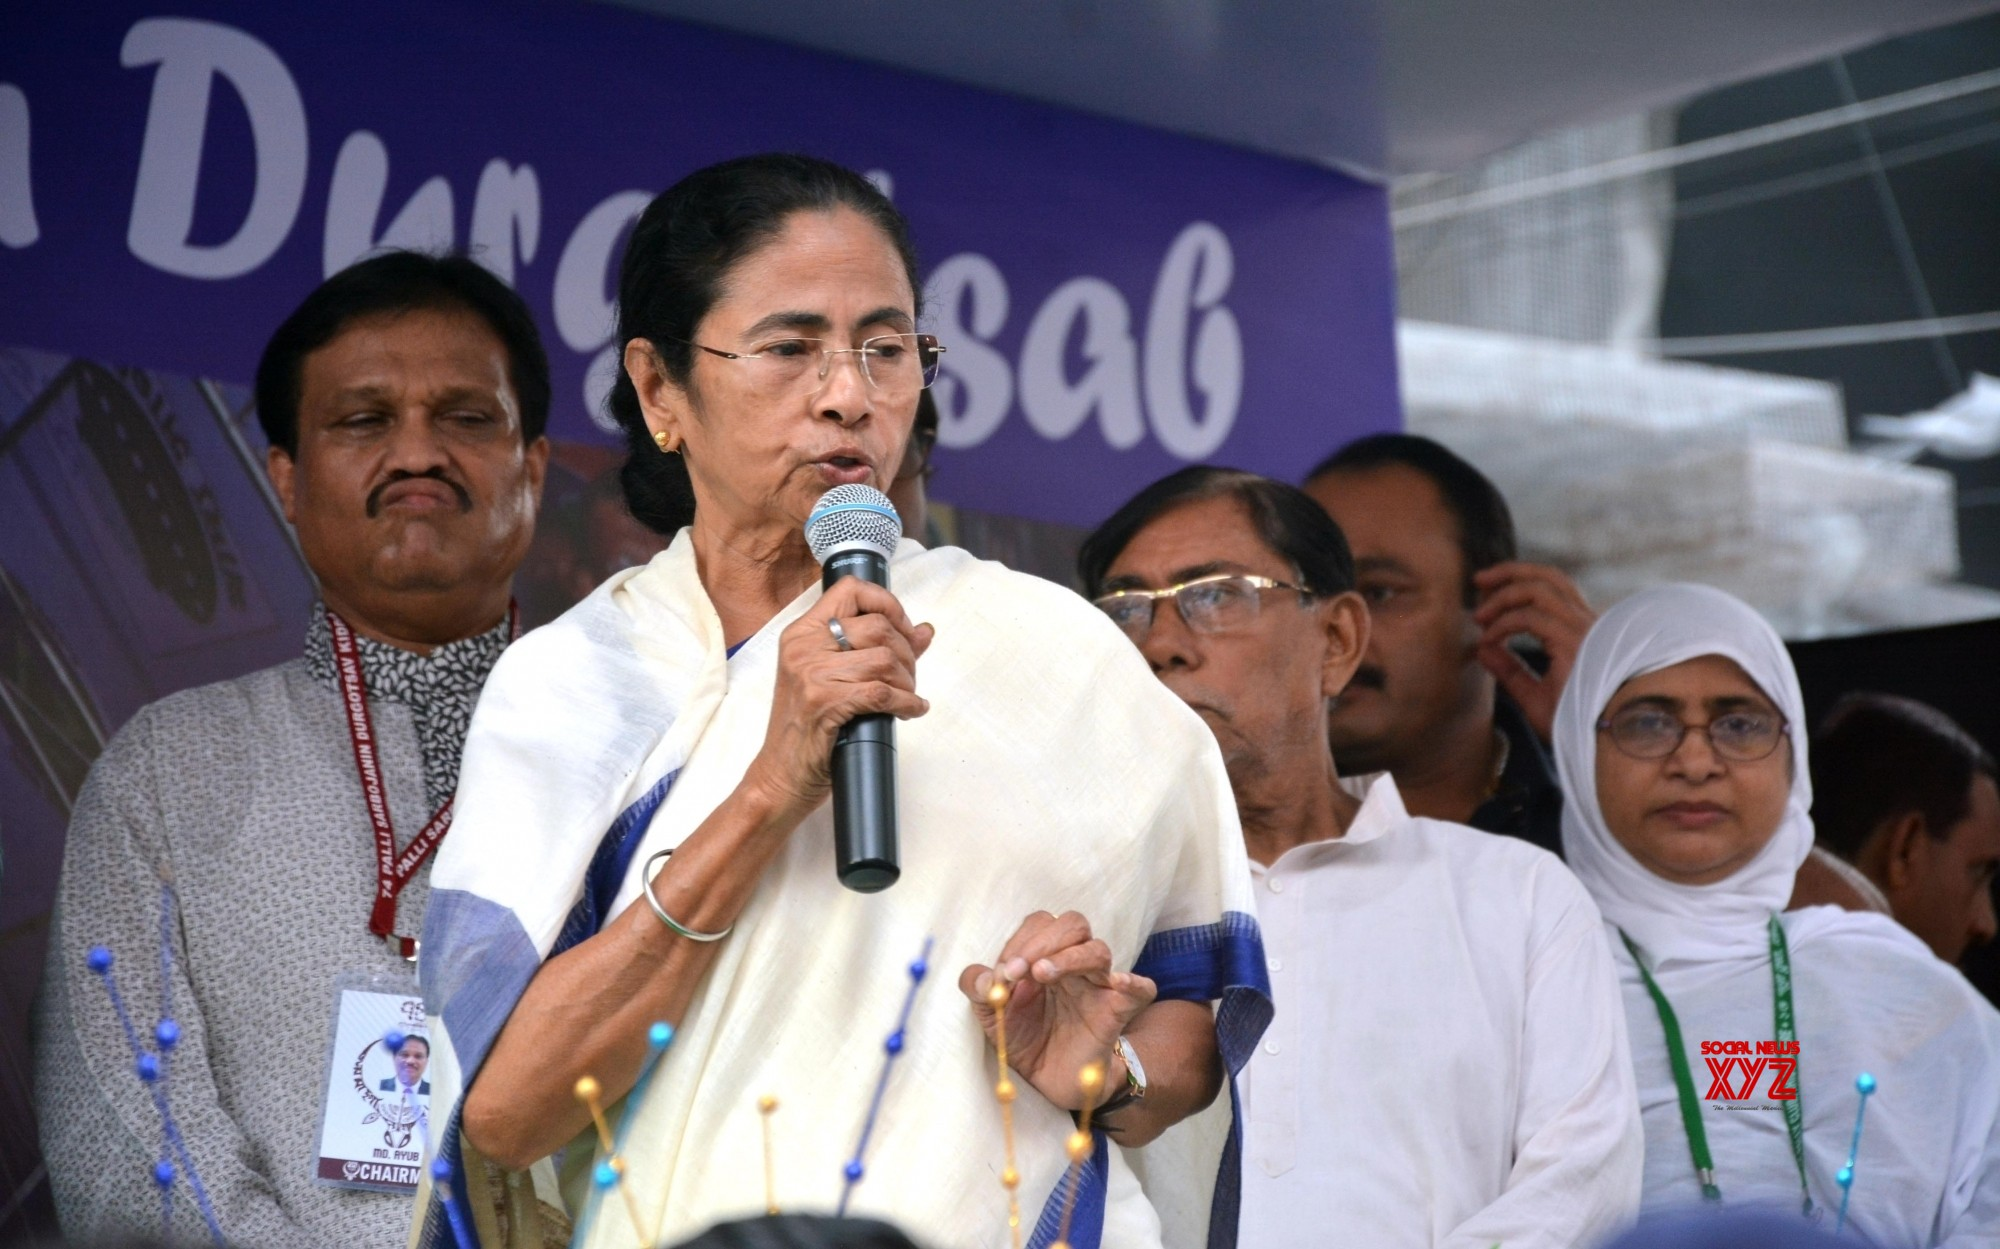 It's a relief that cyclone Titi is weakening, says Mamata